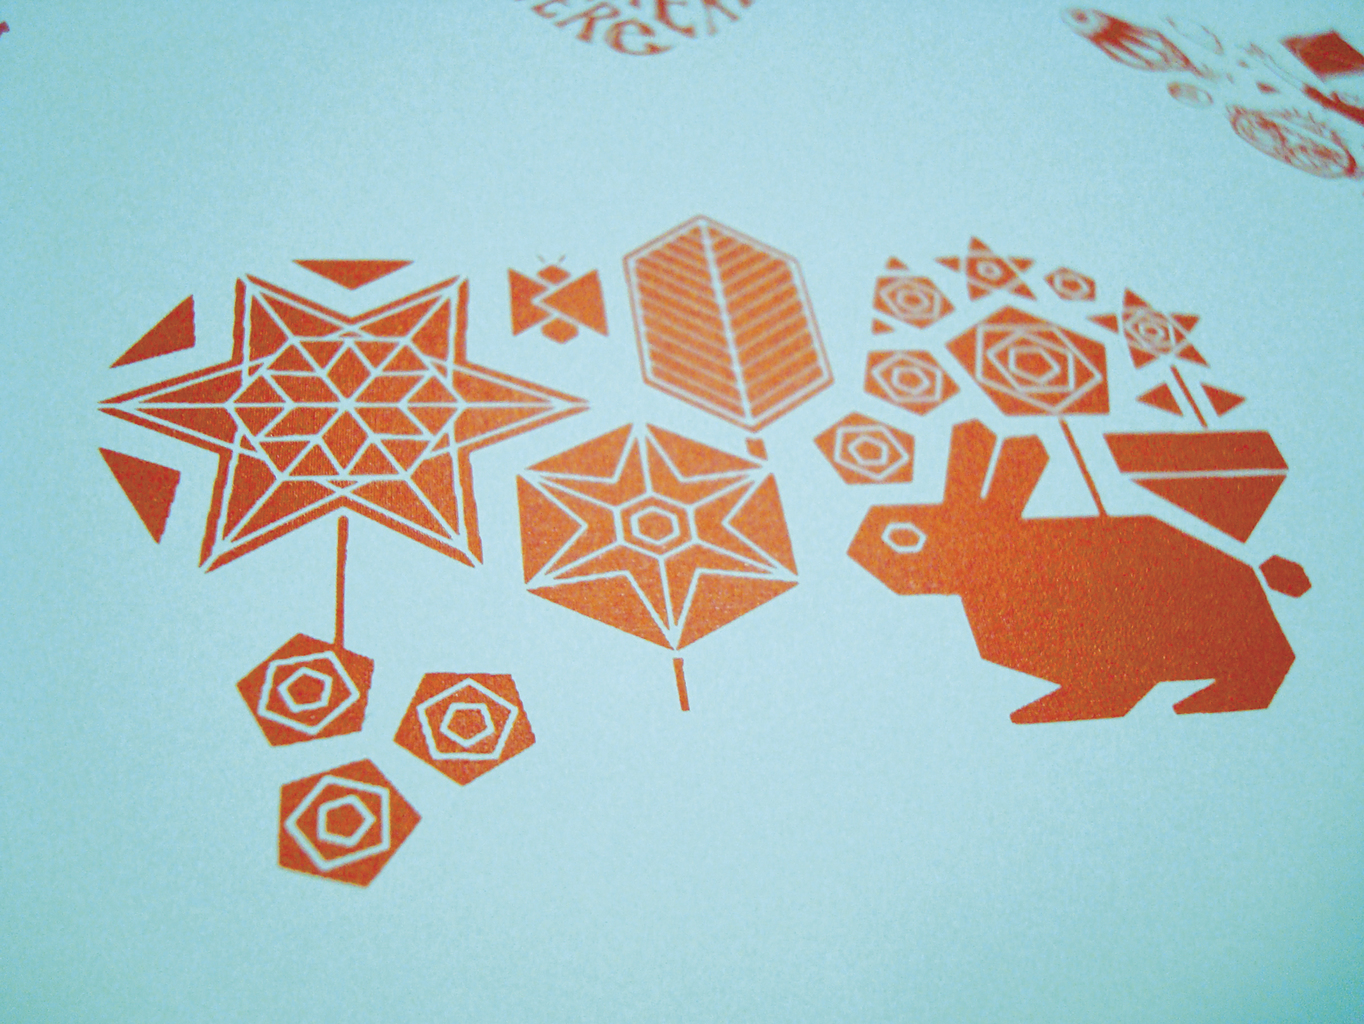 screen-print-(in-process)-of-one-of-the-icons